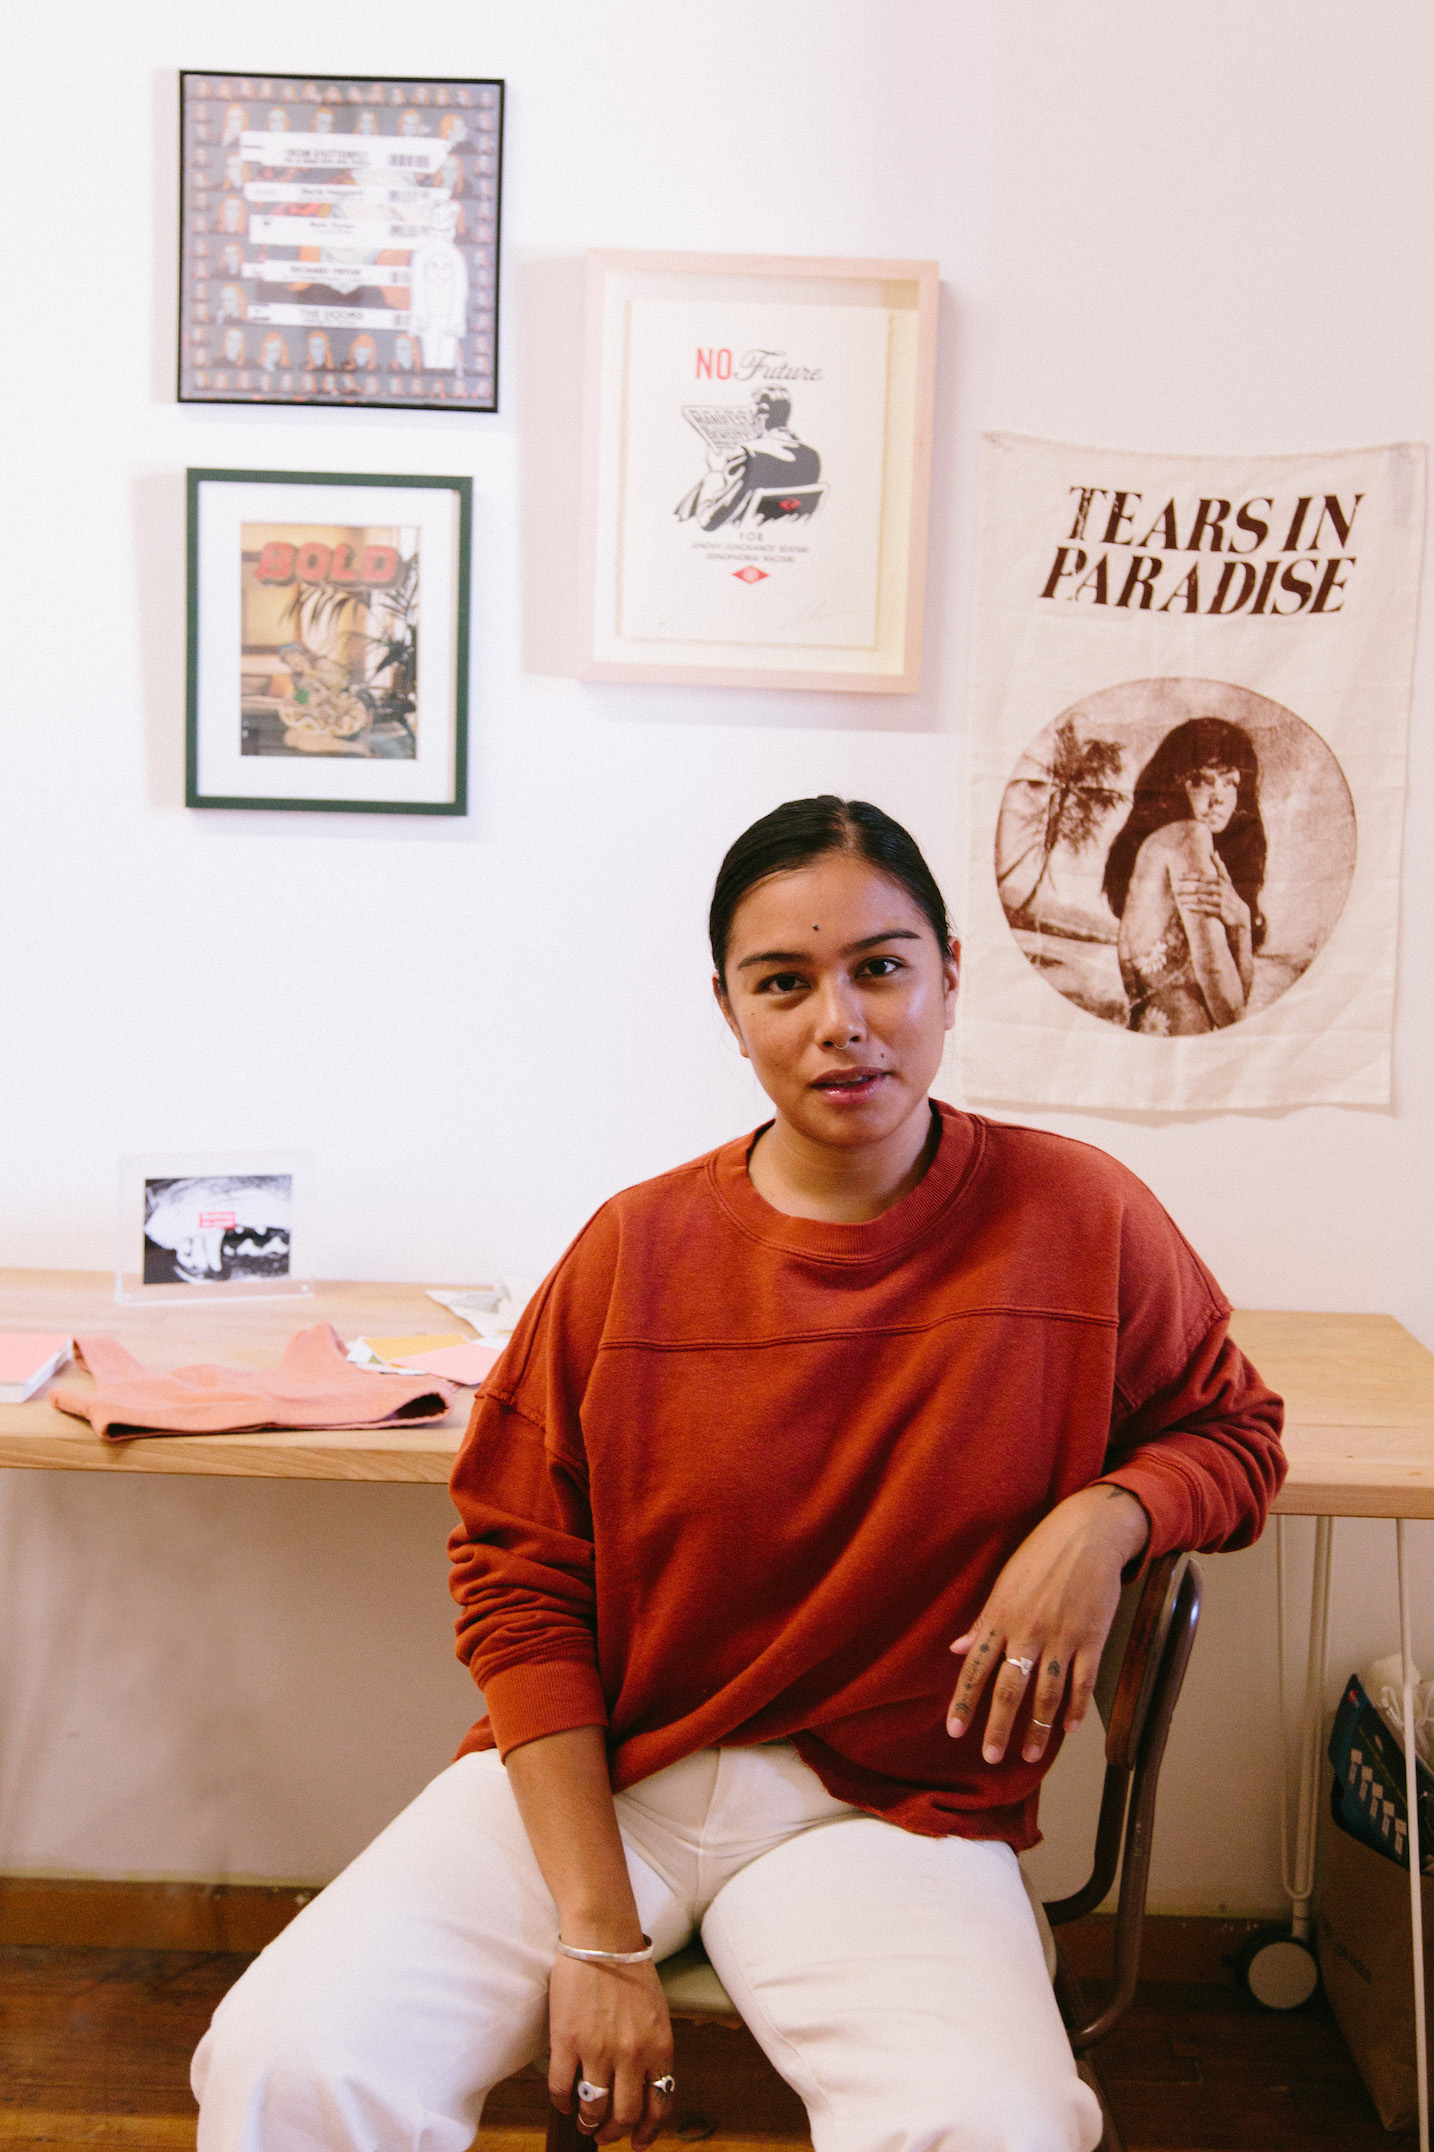 Raw hem cozy sweatshirt - A Week Of Super-Chill Conscious Fashion With Isadora Alvarez, Founder Of Back Beat Rags on The Good Trade